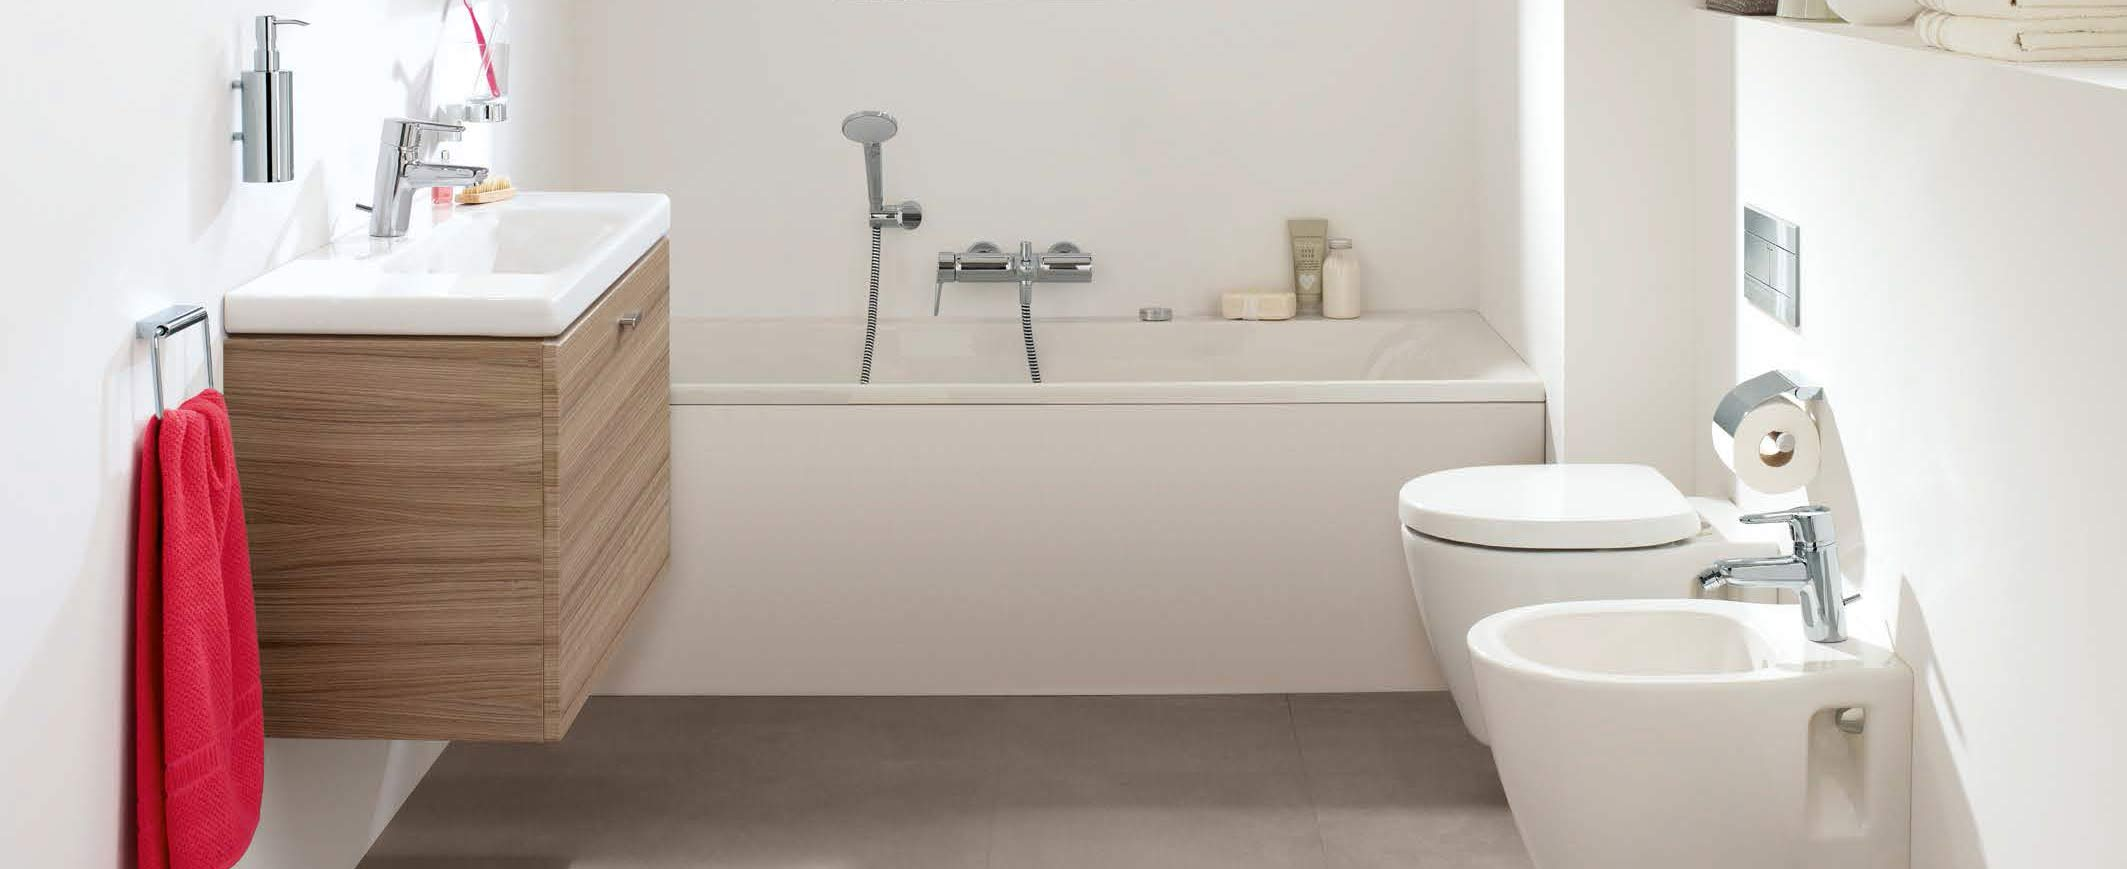 Ideal standard - Vasche da bagno ideal standard ...